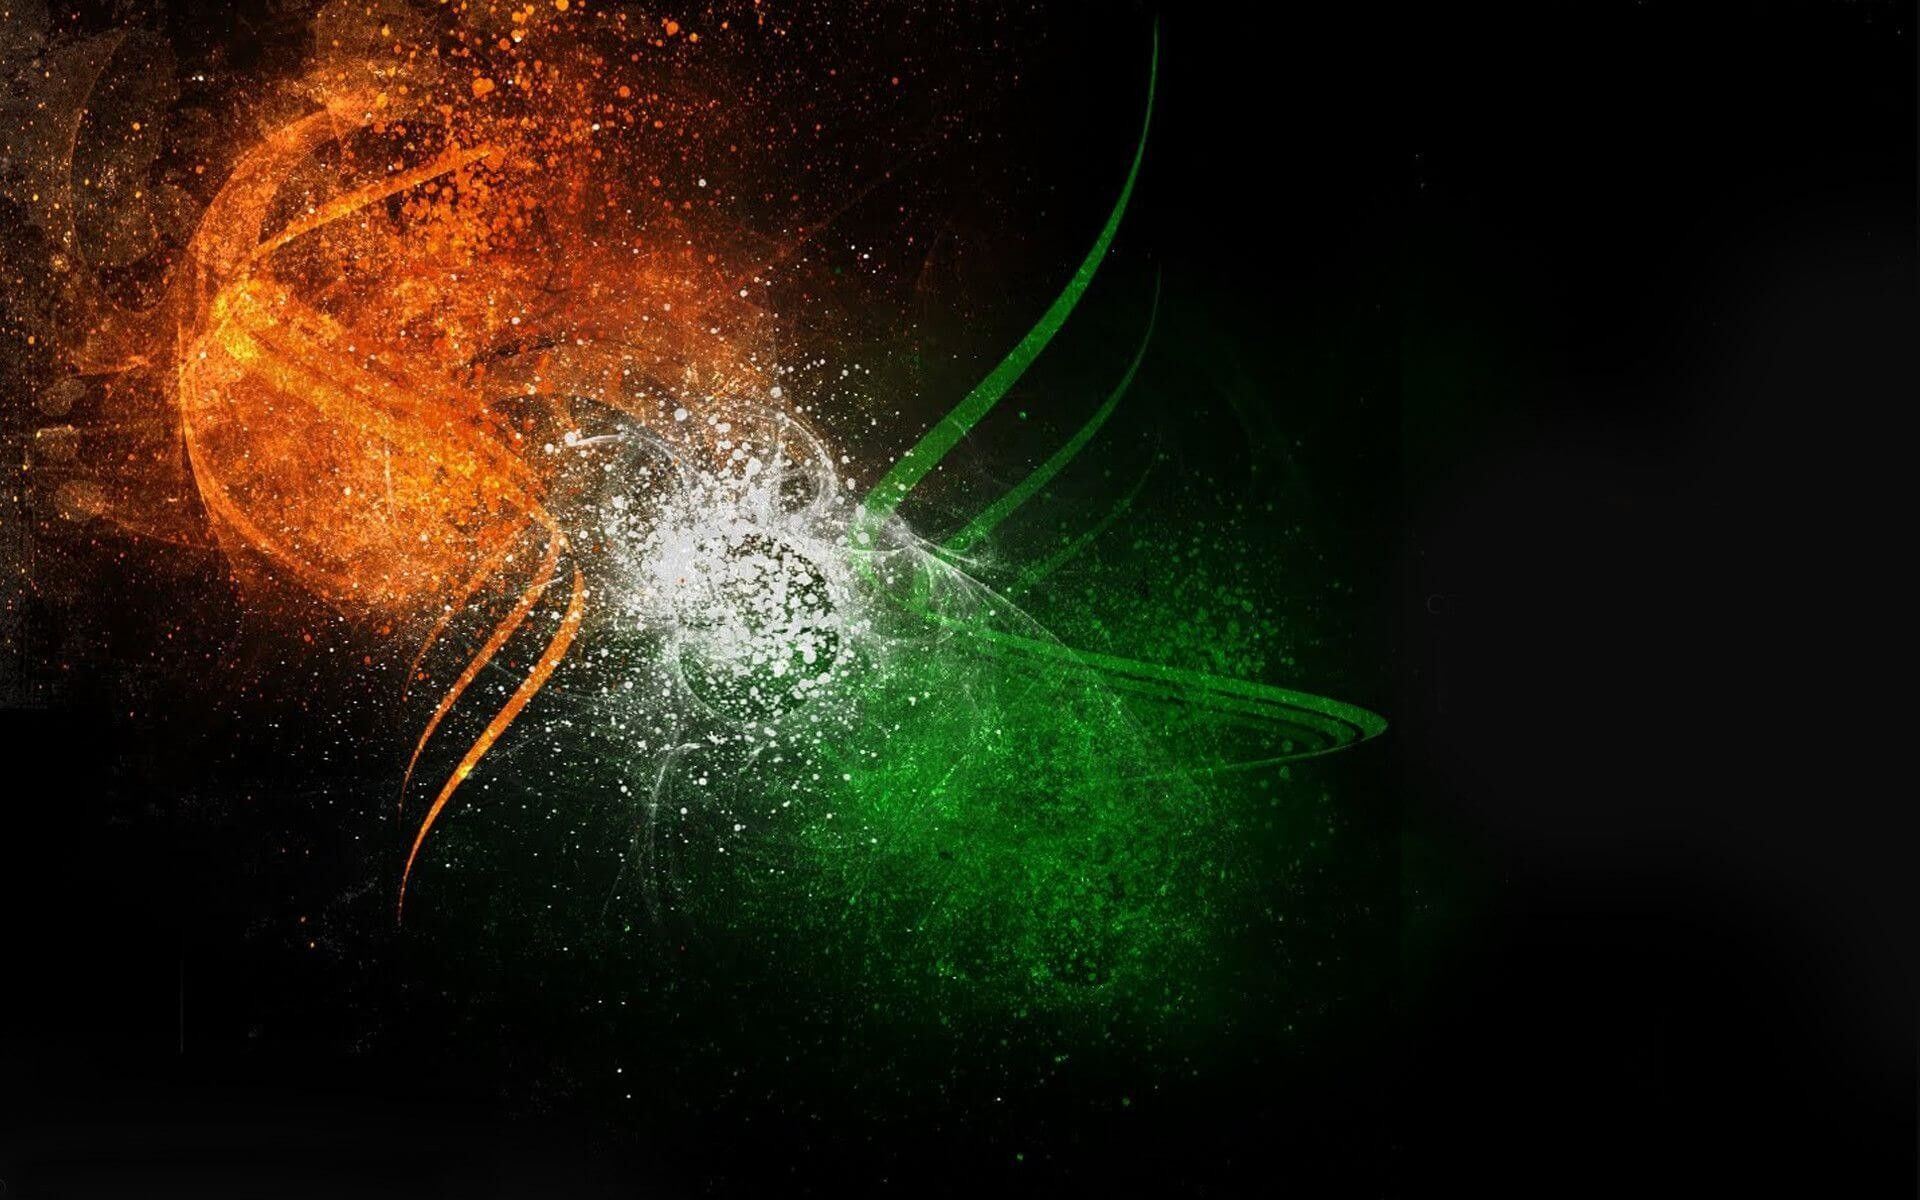 Indian Flag Hd Wallpaper: 1980x1080 Wallpapers HD (84+ Images